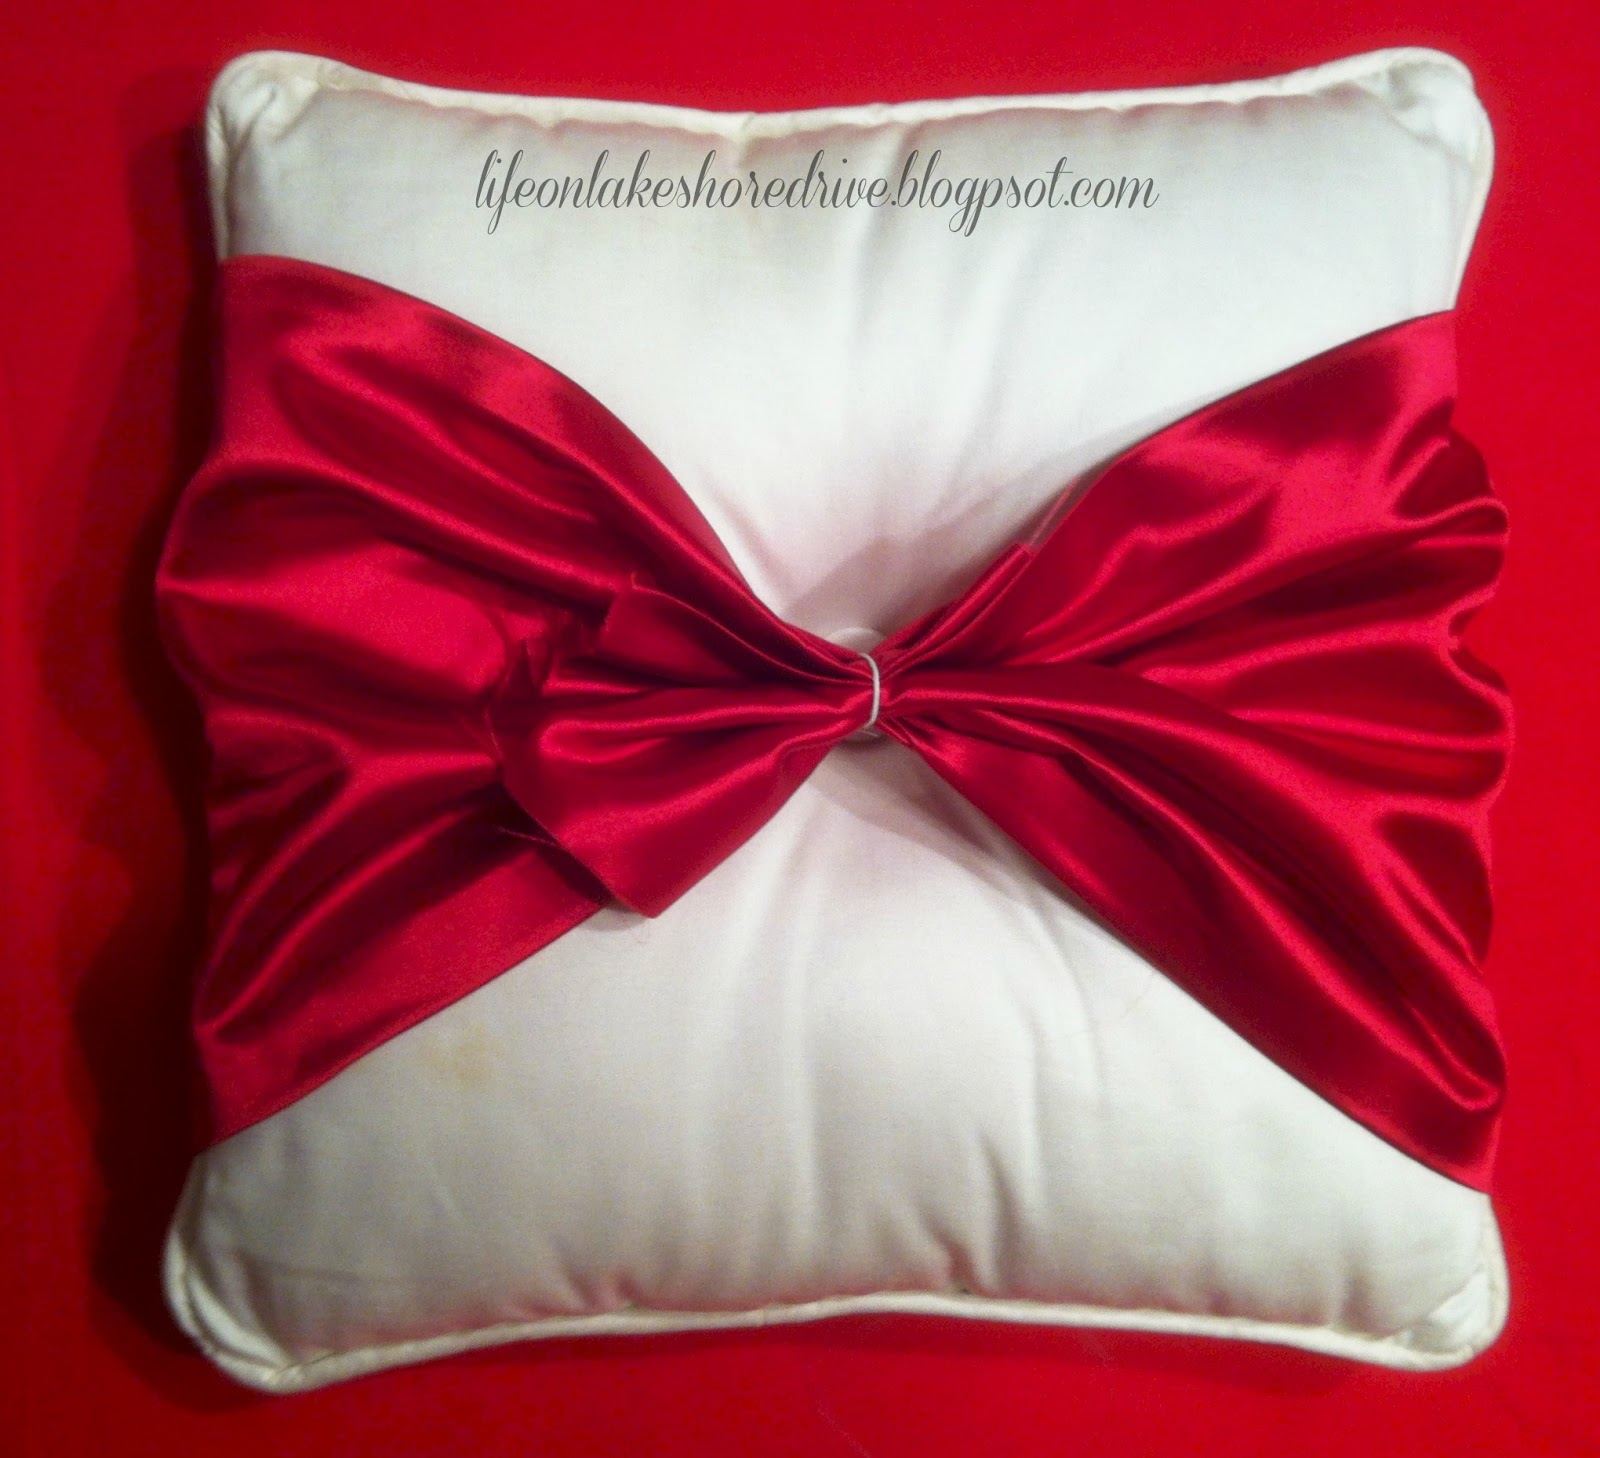 Easy No Sew Pillow With Red Satin Bow Tutorial